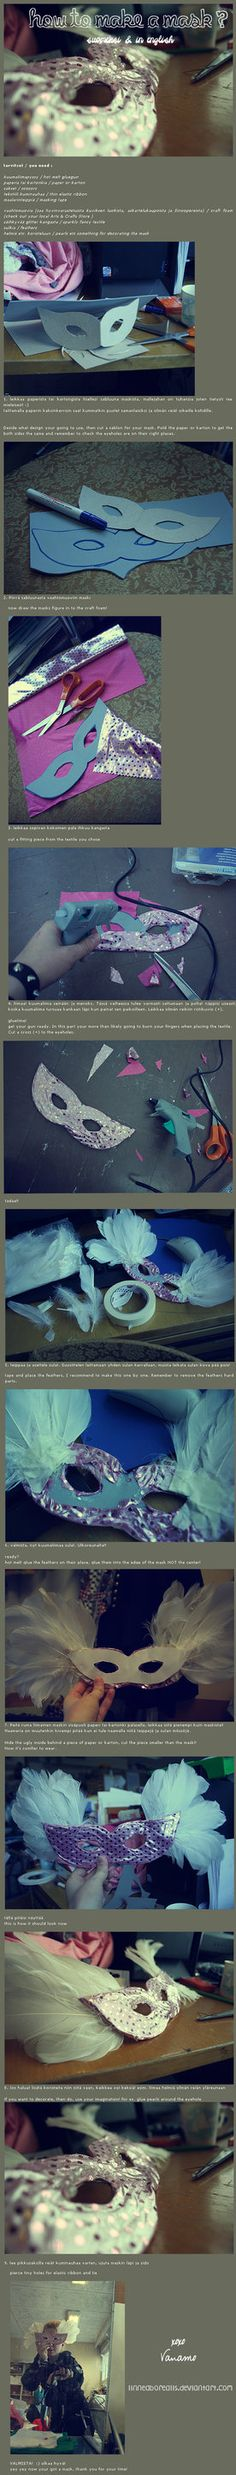 Tutorial: How To Make a Mask? by ~linneaborealis on deviantART